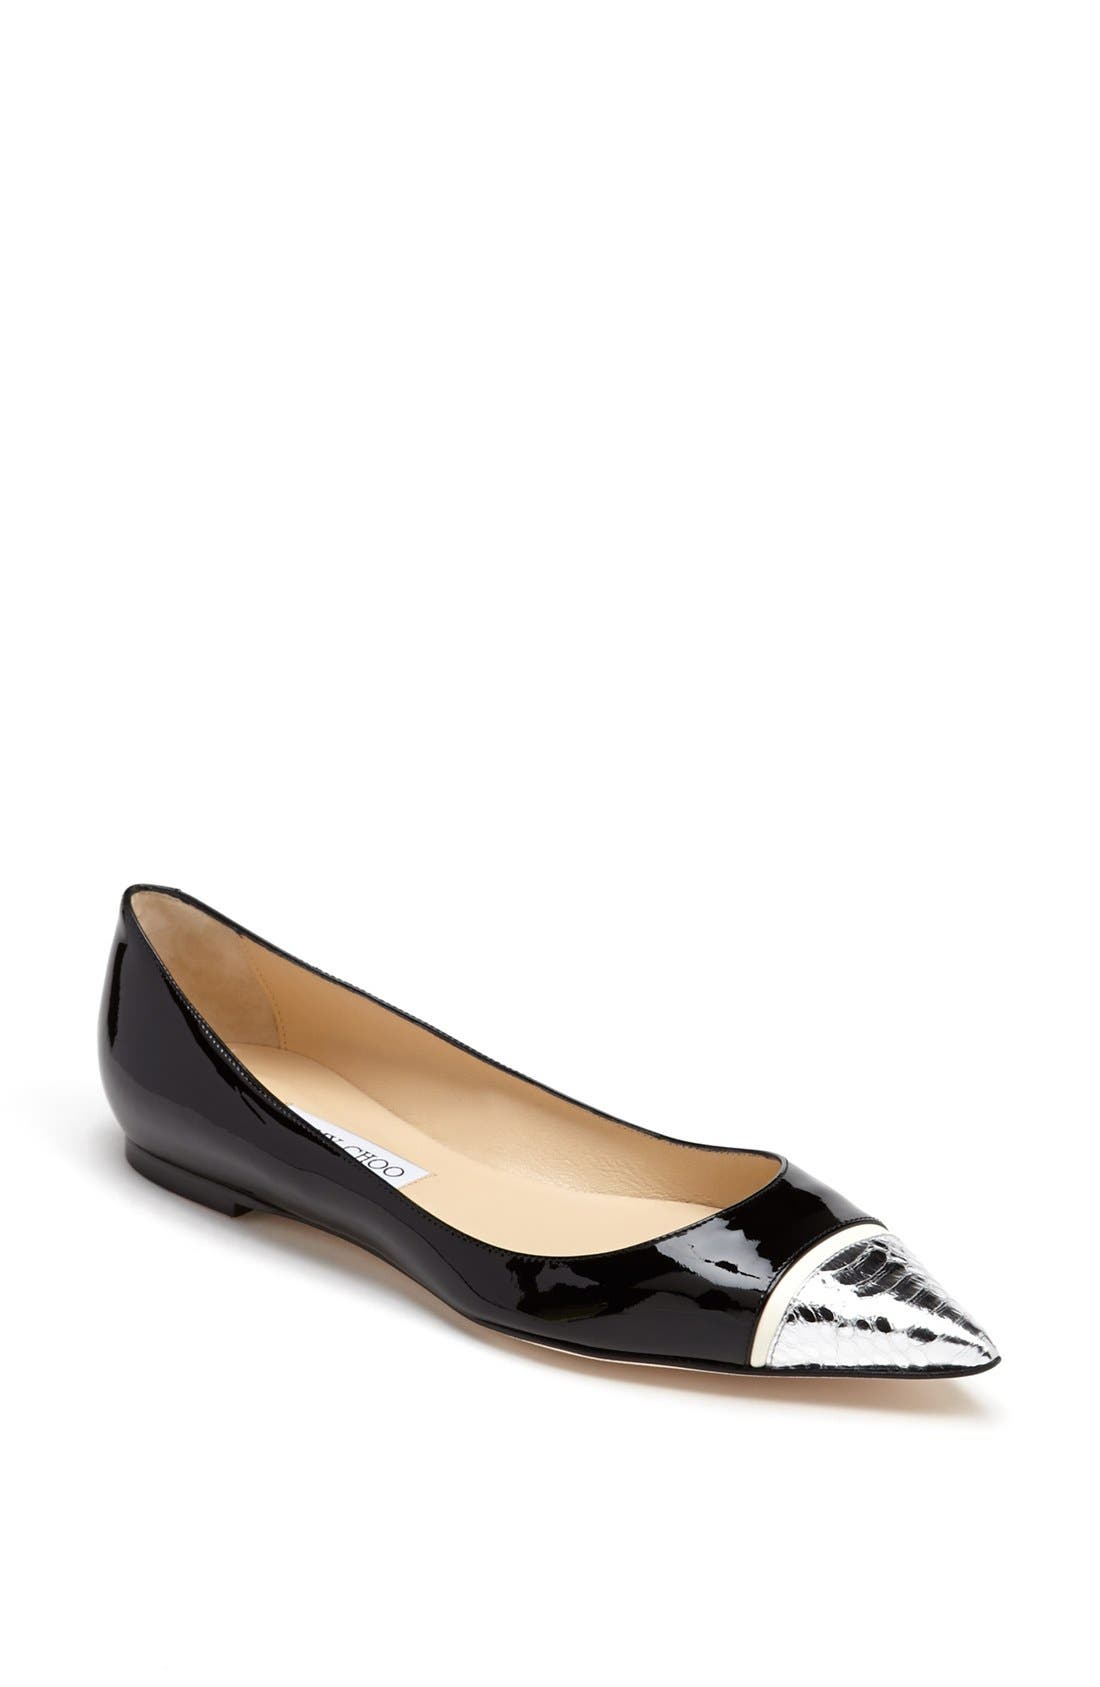 Alternate Image 1 Selected - Jimmy Choo 'Alfonso' Flat